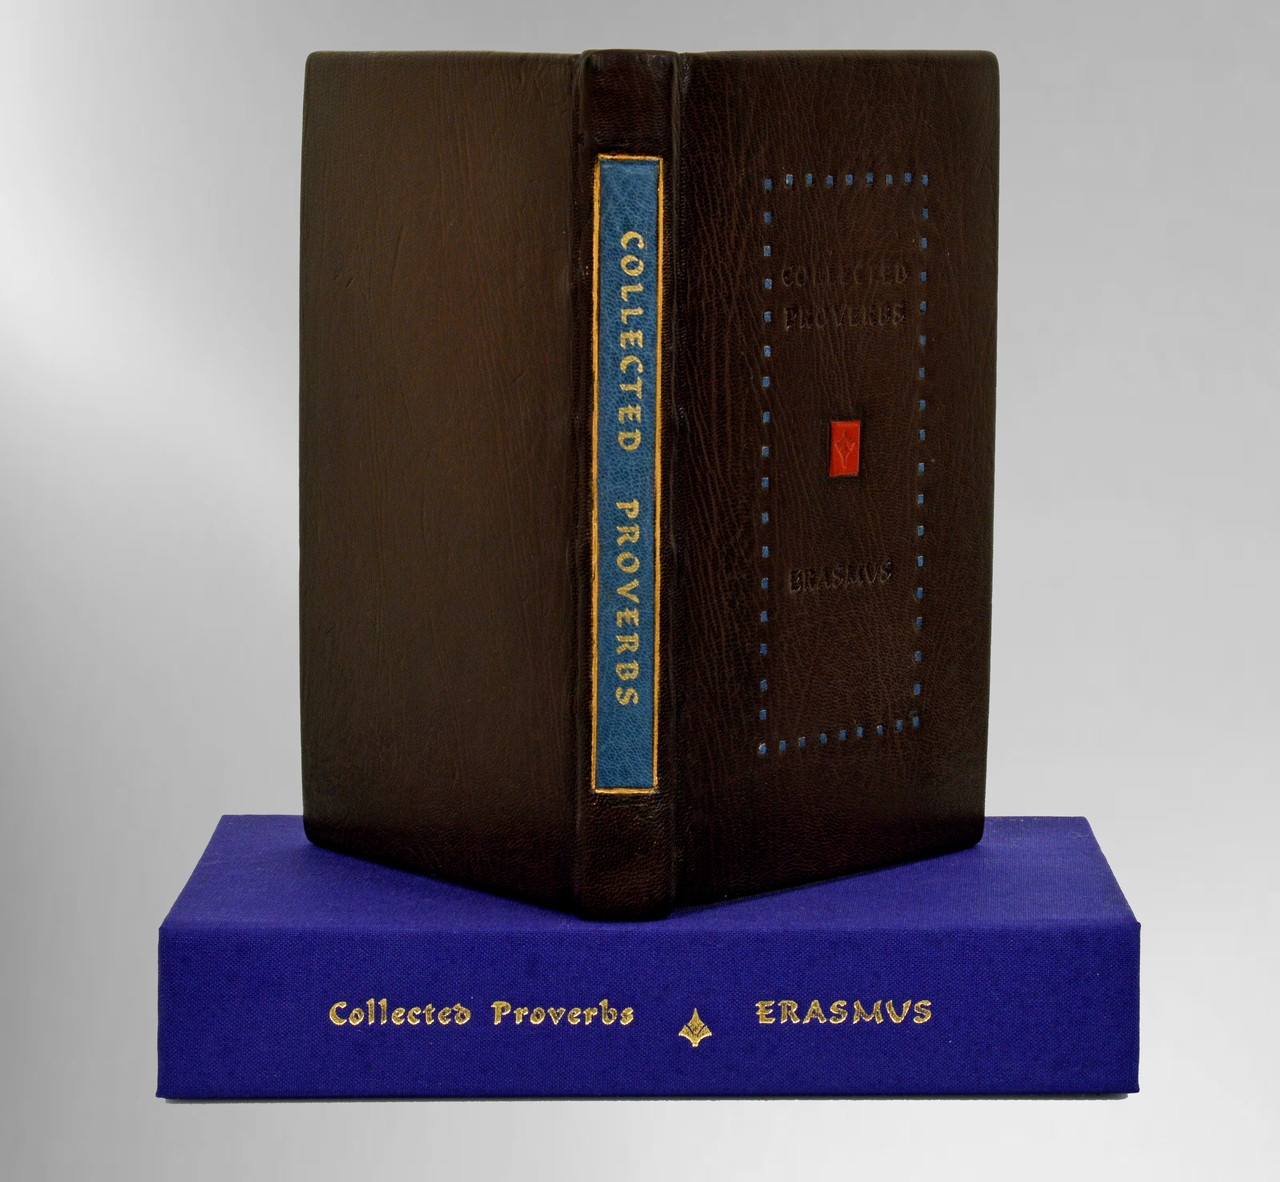 Collected Proverbs by Erasmus, Unique Fine Binding by Constance Wozny